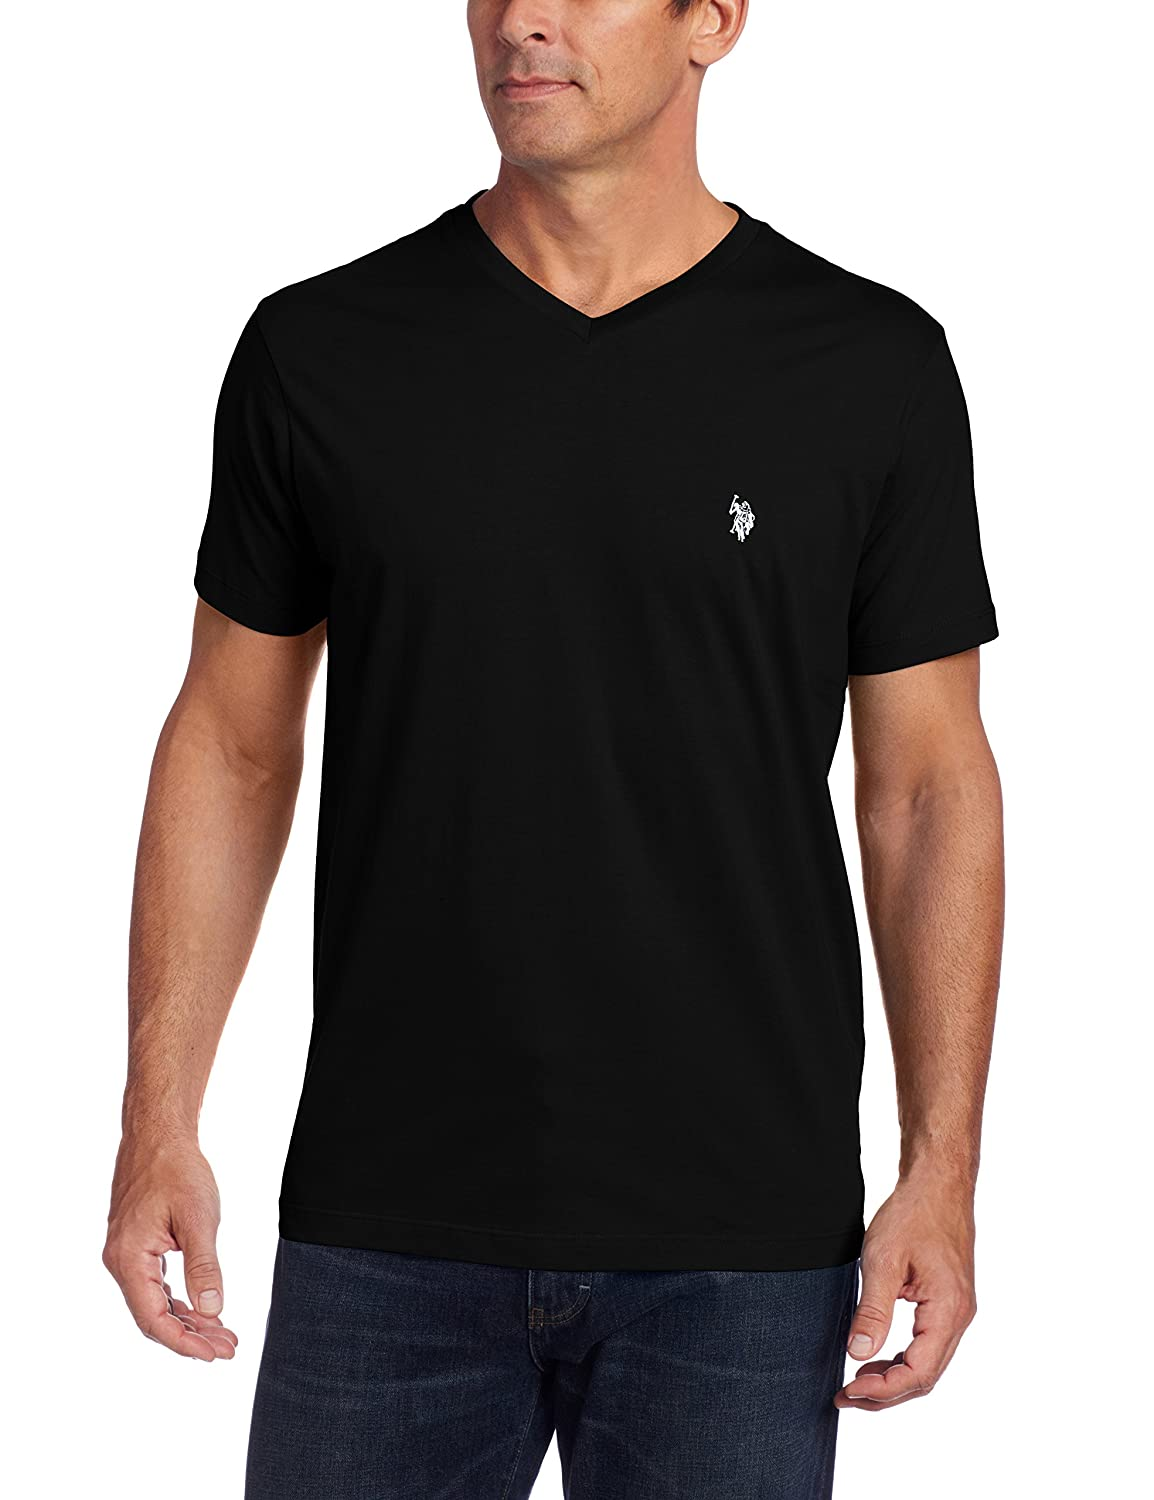 U.S. Polo Assn. Men's V-Neck T-Shirt 11-3903-04-AMHT-S